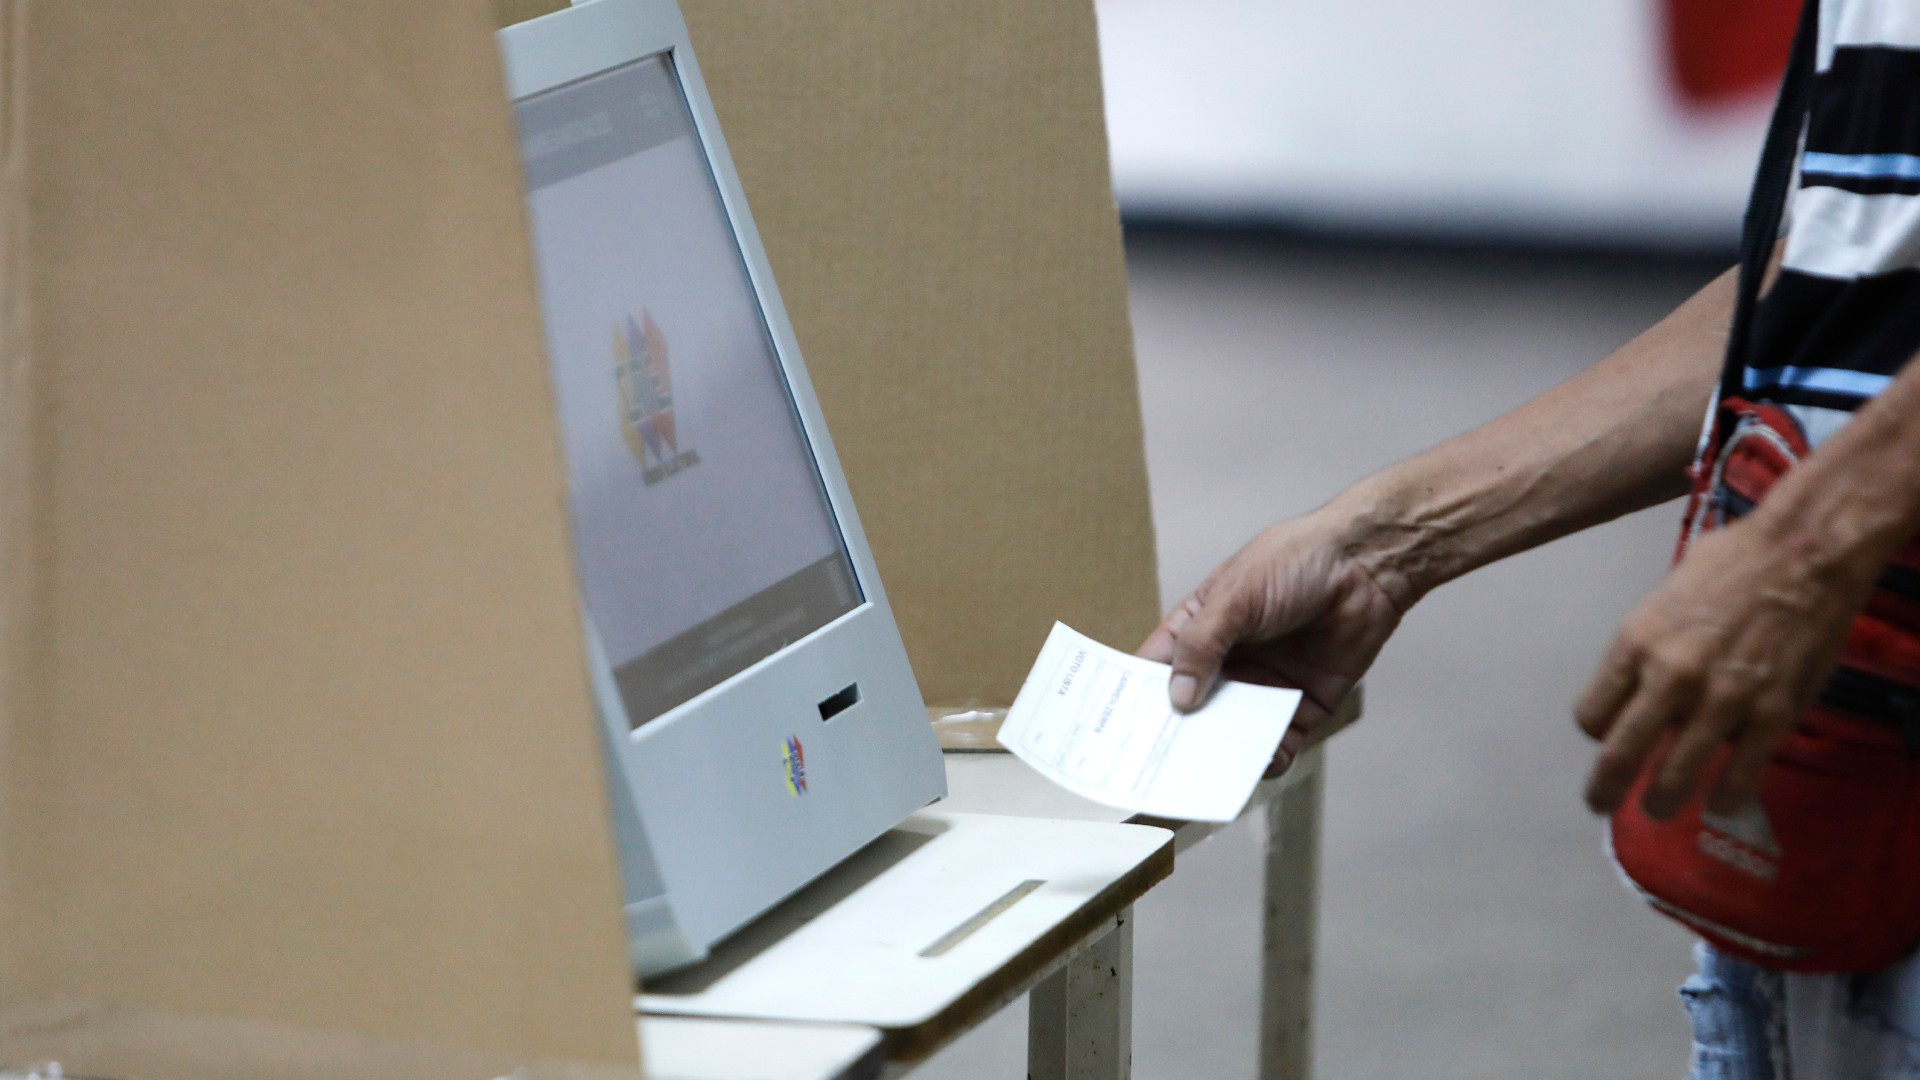 Venezuelan Company Banned for Election 'Fraud'